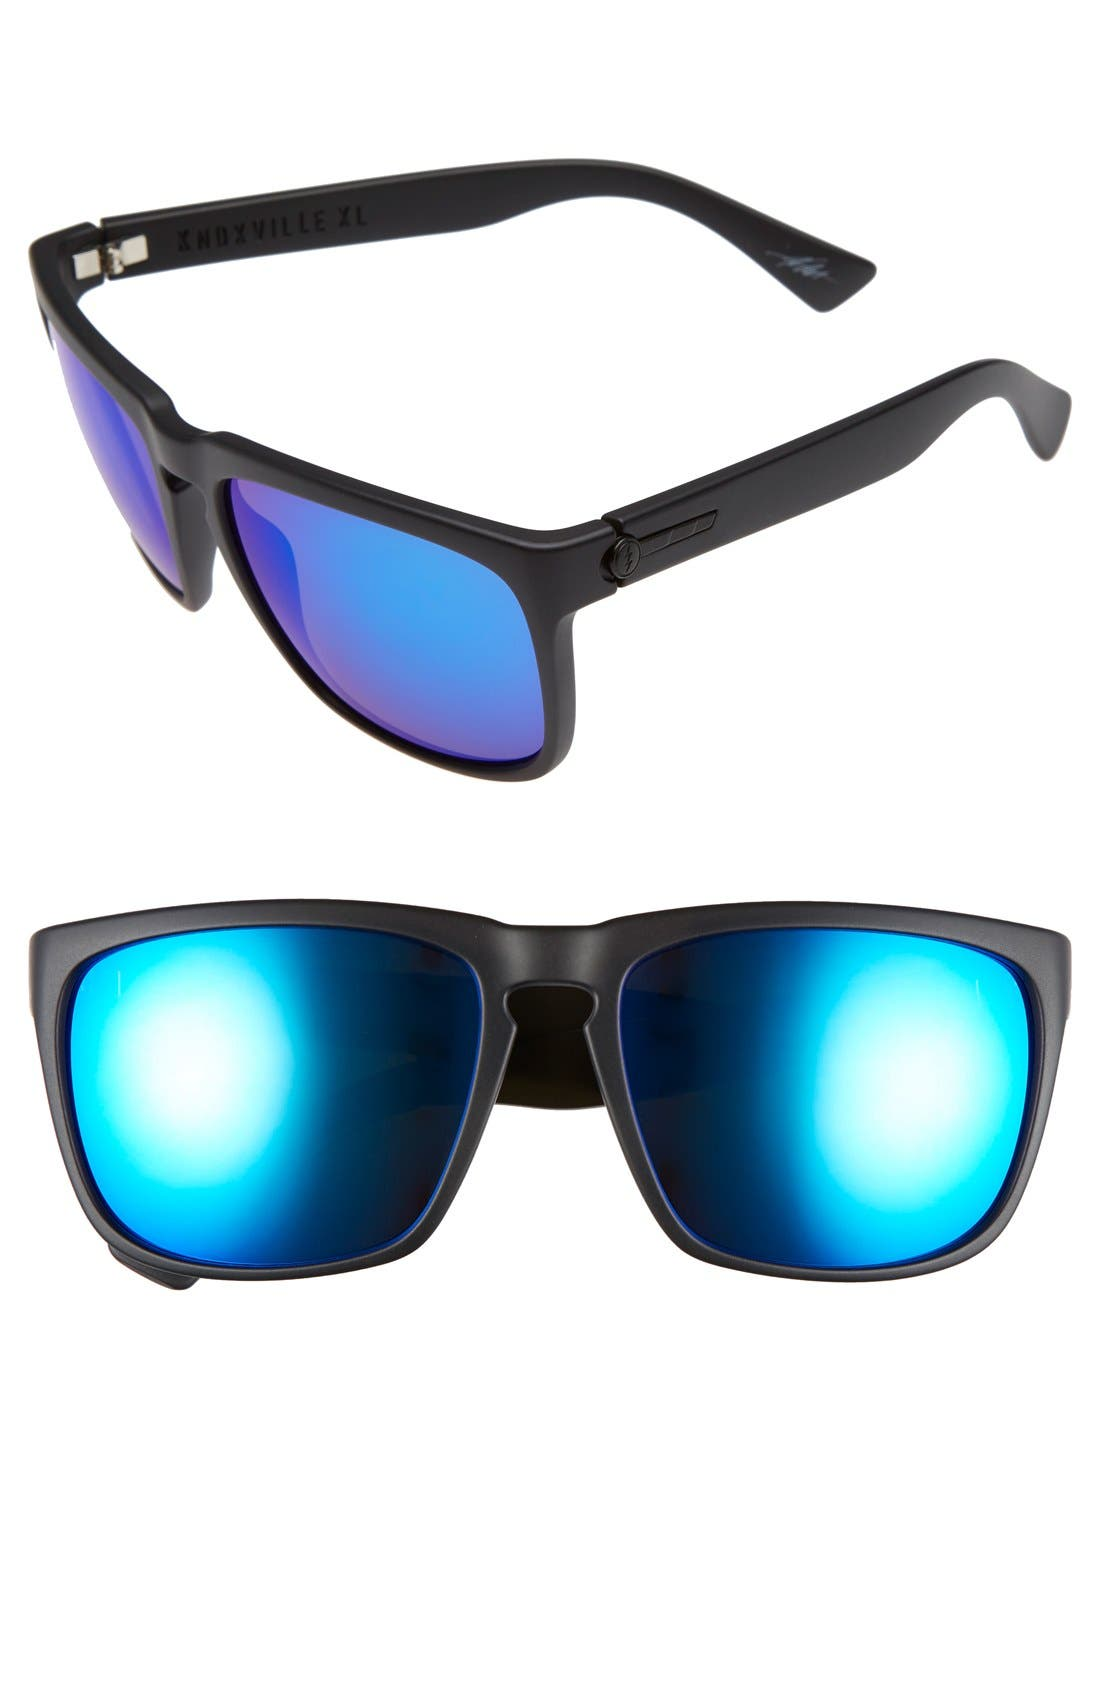 Main Image - ELECTRIC 'Knoxville XL' 61mm Sunglasses